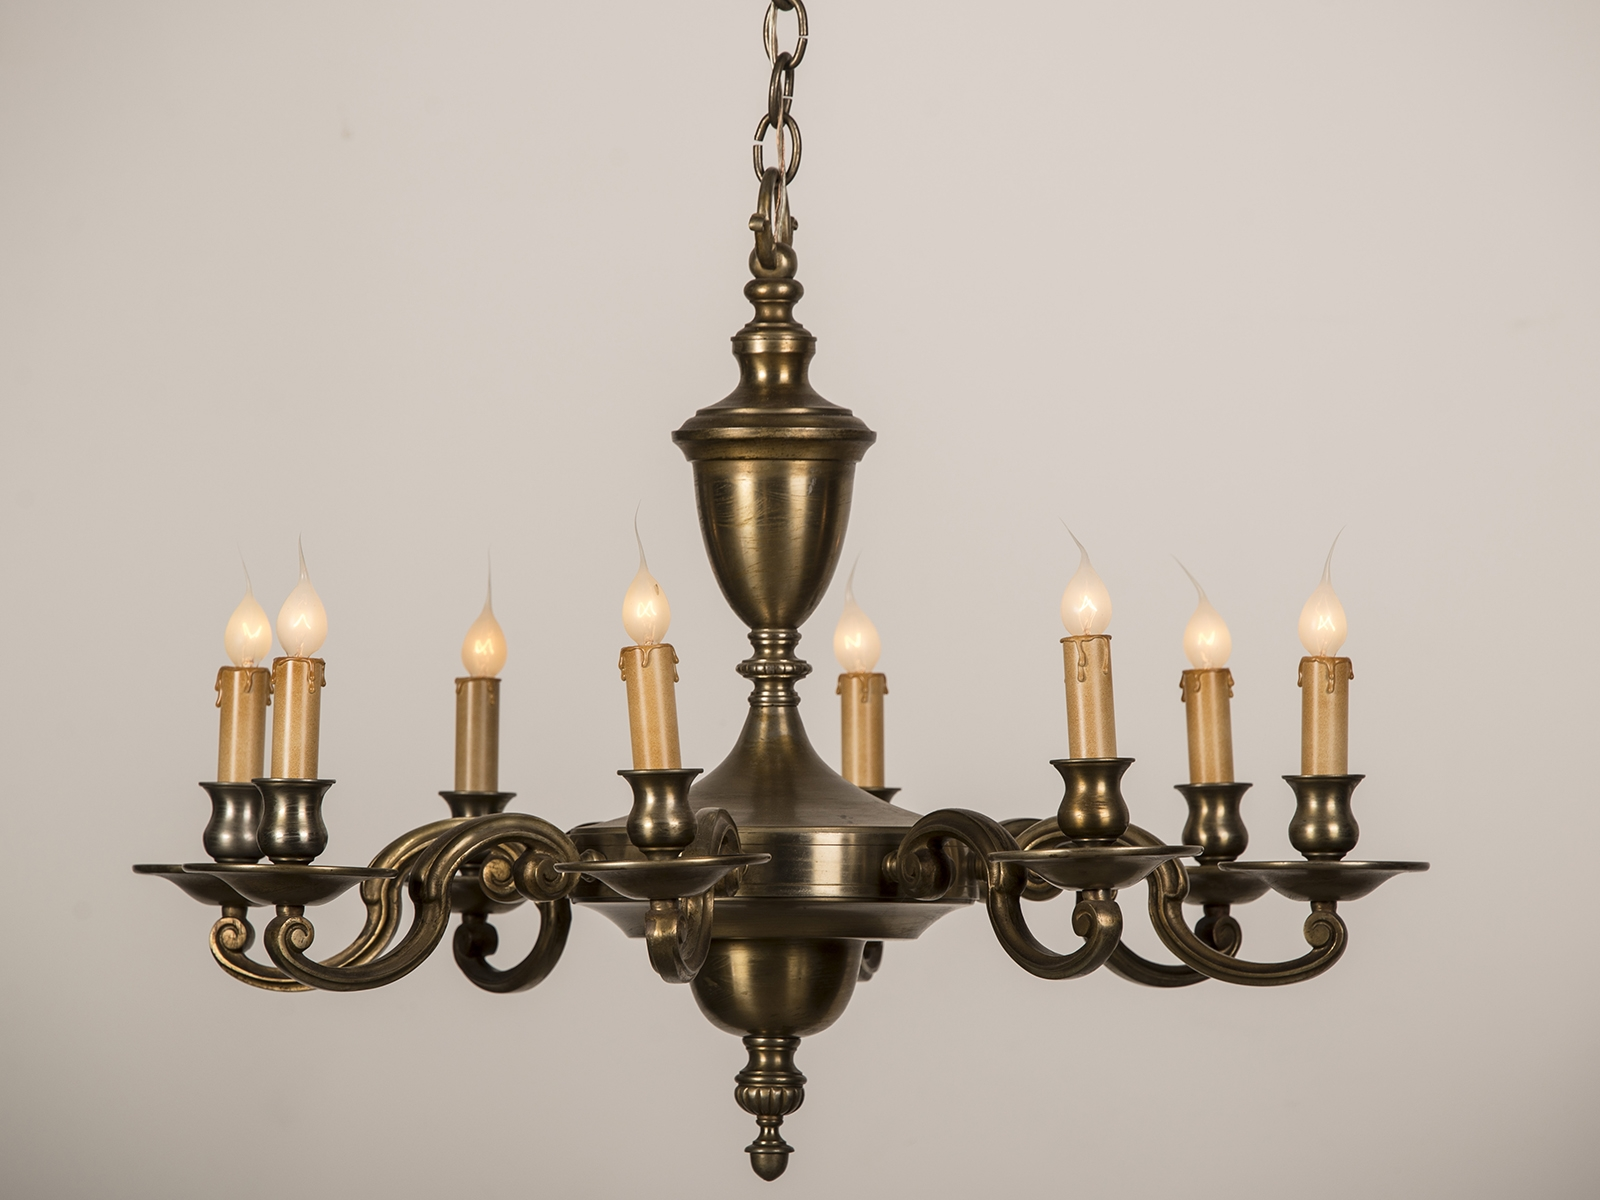 Amazing Brass Chandelier With Shades 37 Antique Brass Chandelier In Old Brass Chandeliers (Image 2 of 25)